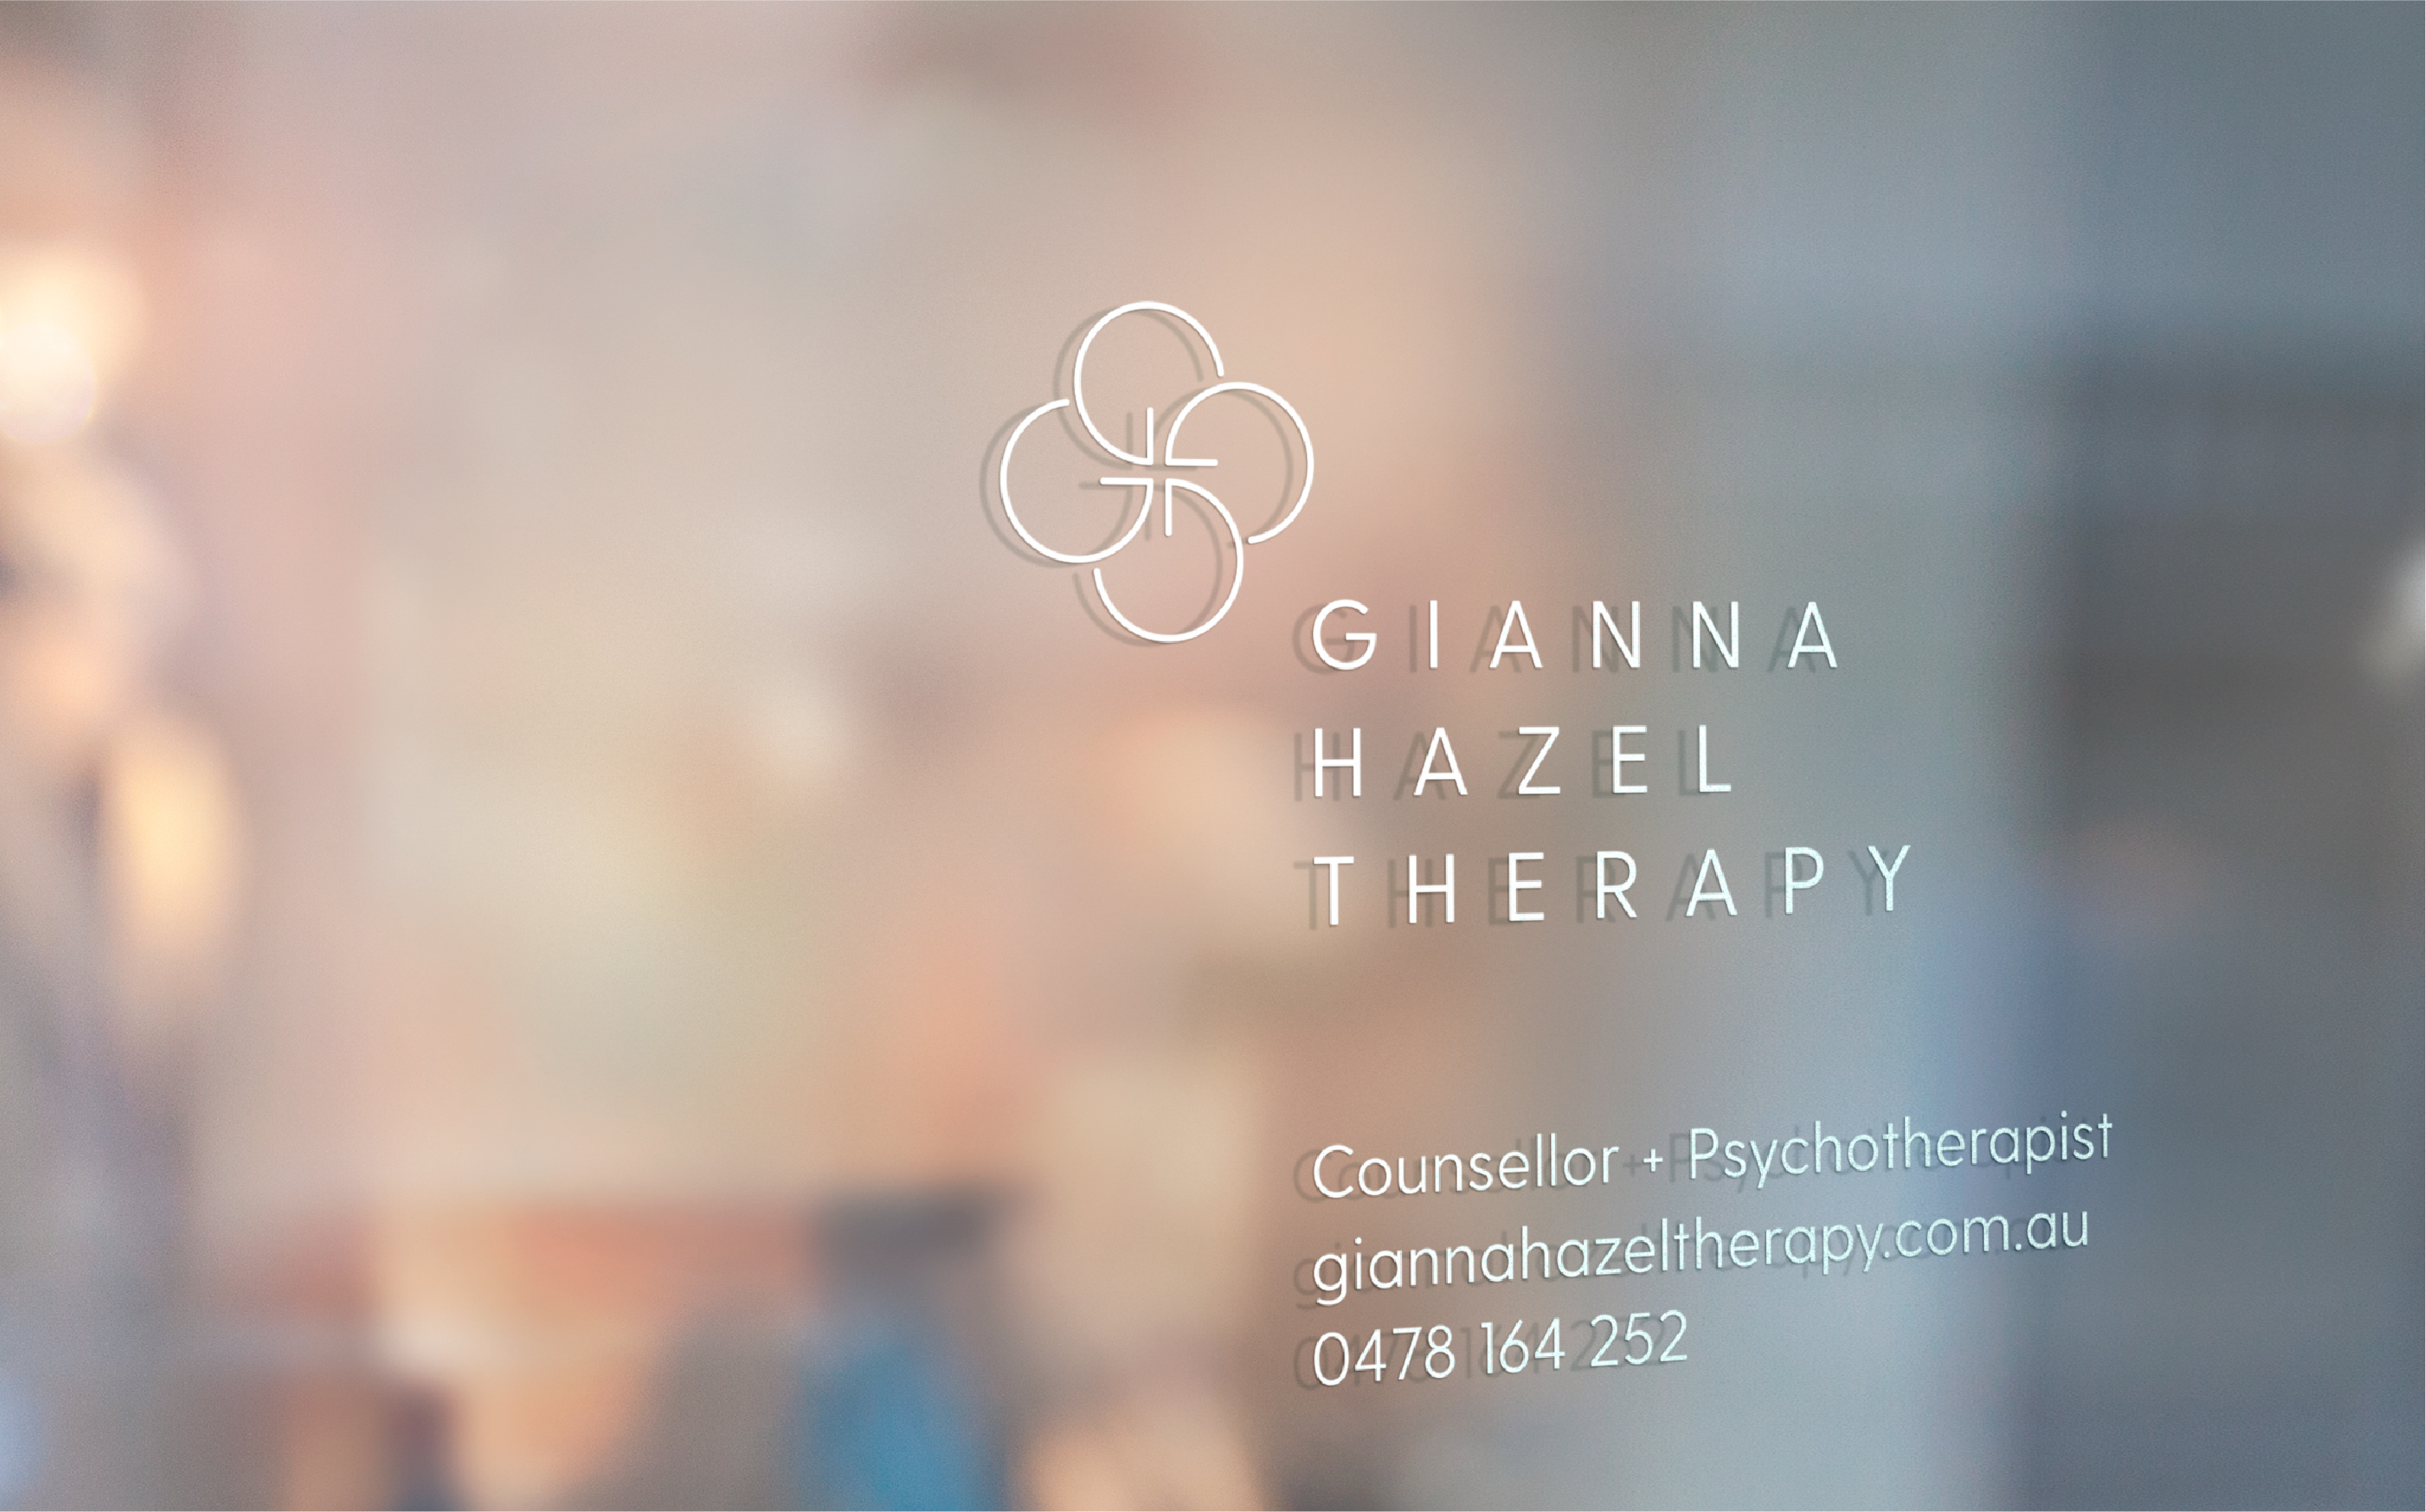 gianna-hazel-design-logo-signage-brand-business-card-4